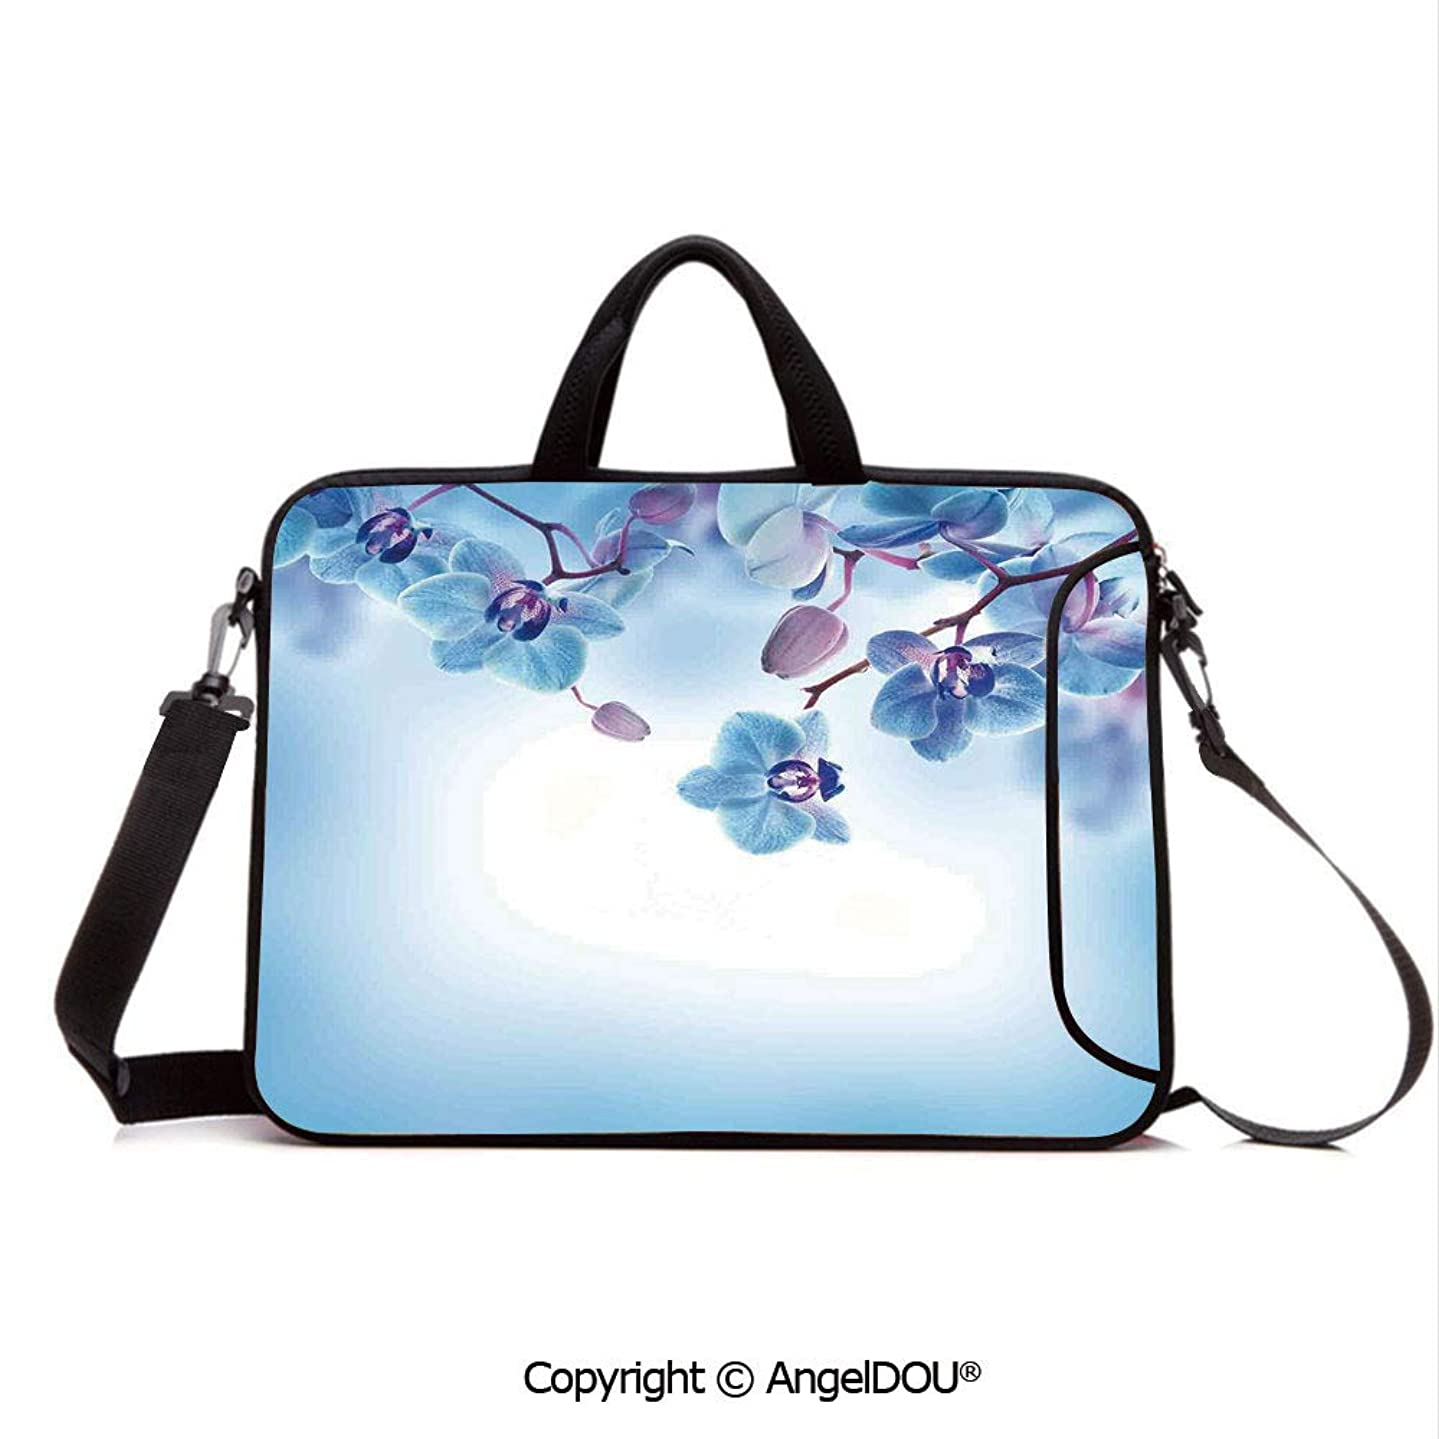 AngelDOU Waterproof Laptop Sleeve Bag Neoprene Carrying Case with Handle & Strap Orchids Asian Natural Flowers Reflections on Water for Spring Calming Art for Women &Men Work Home Office Blue and Pu